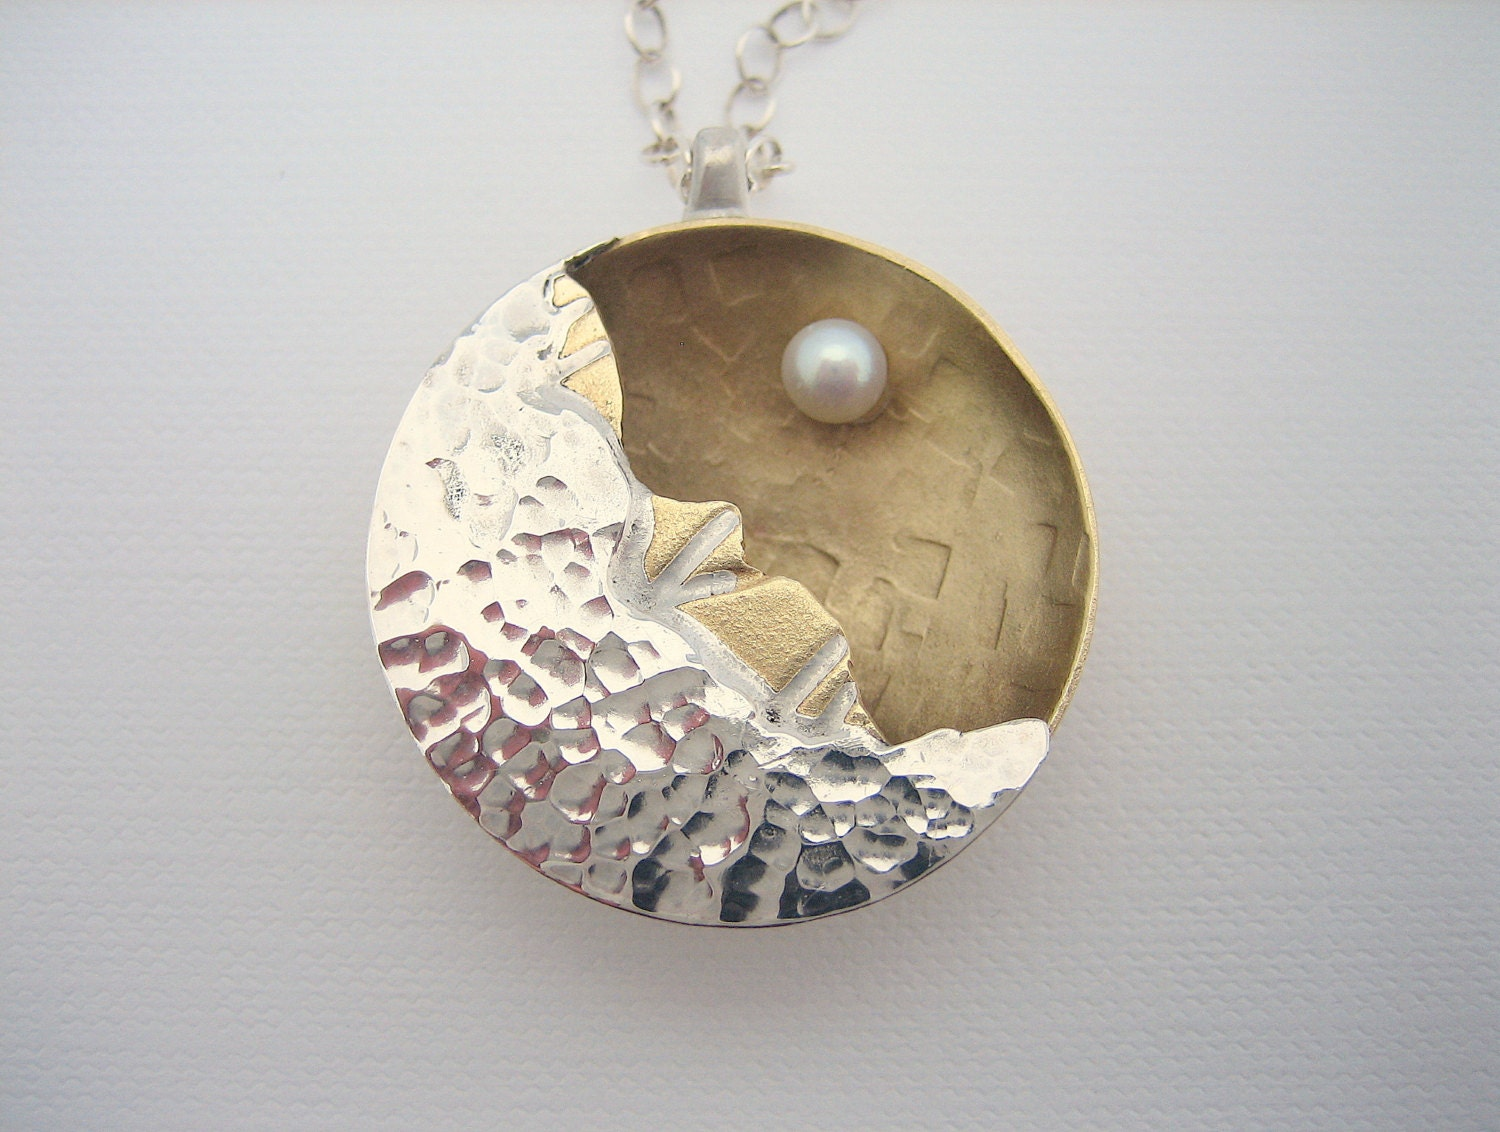 Gold and silver crescent moon pendant with pearl, golden celestial moon necklace, hammered moon necklace, lunar necklace